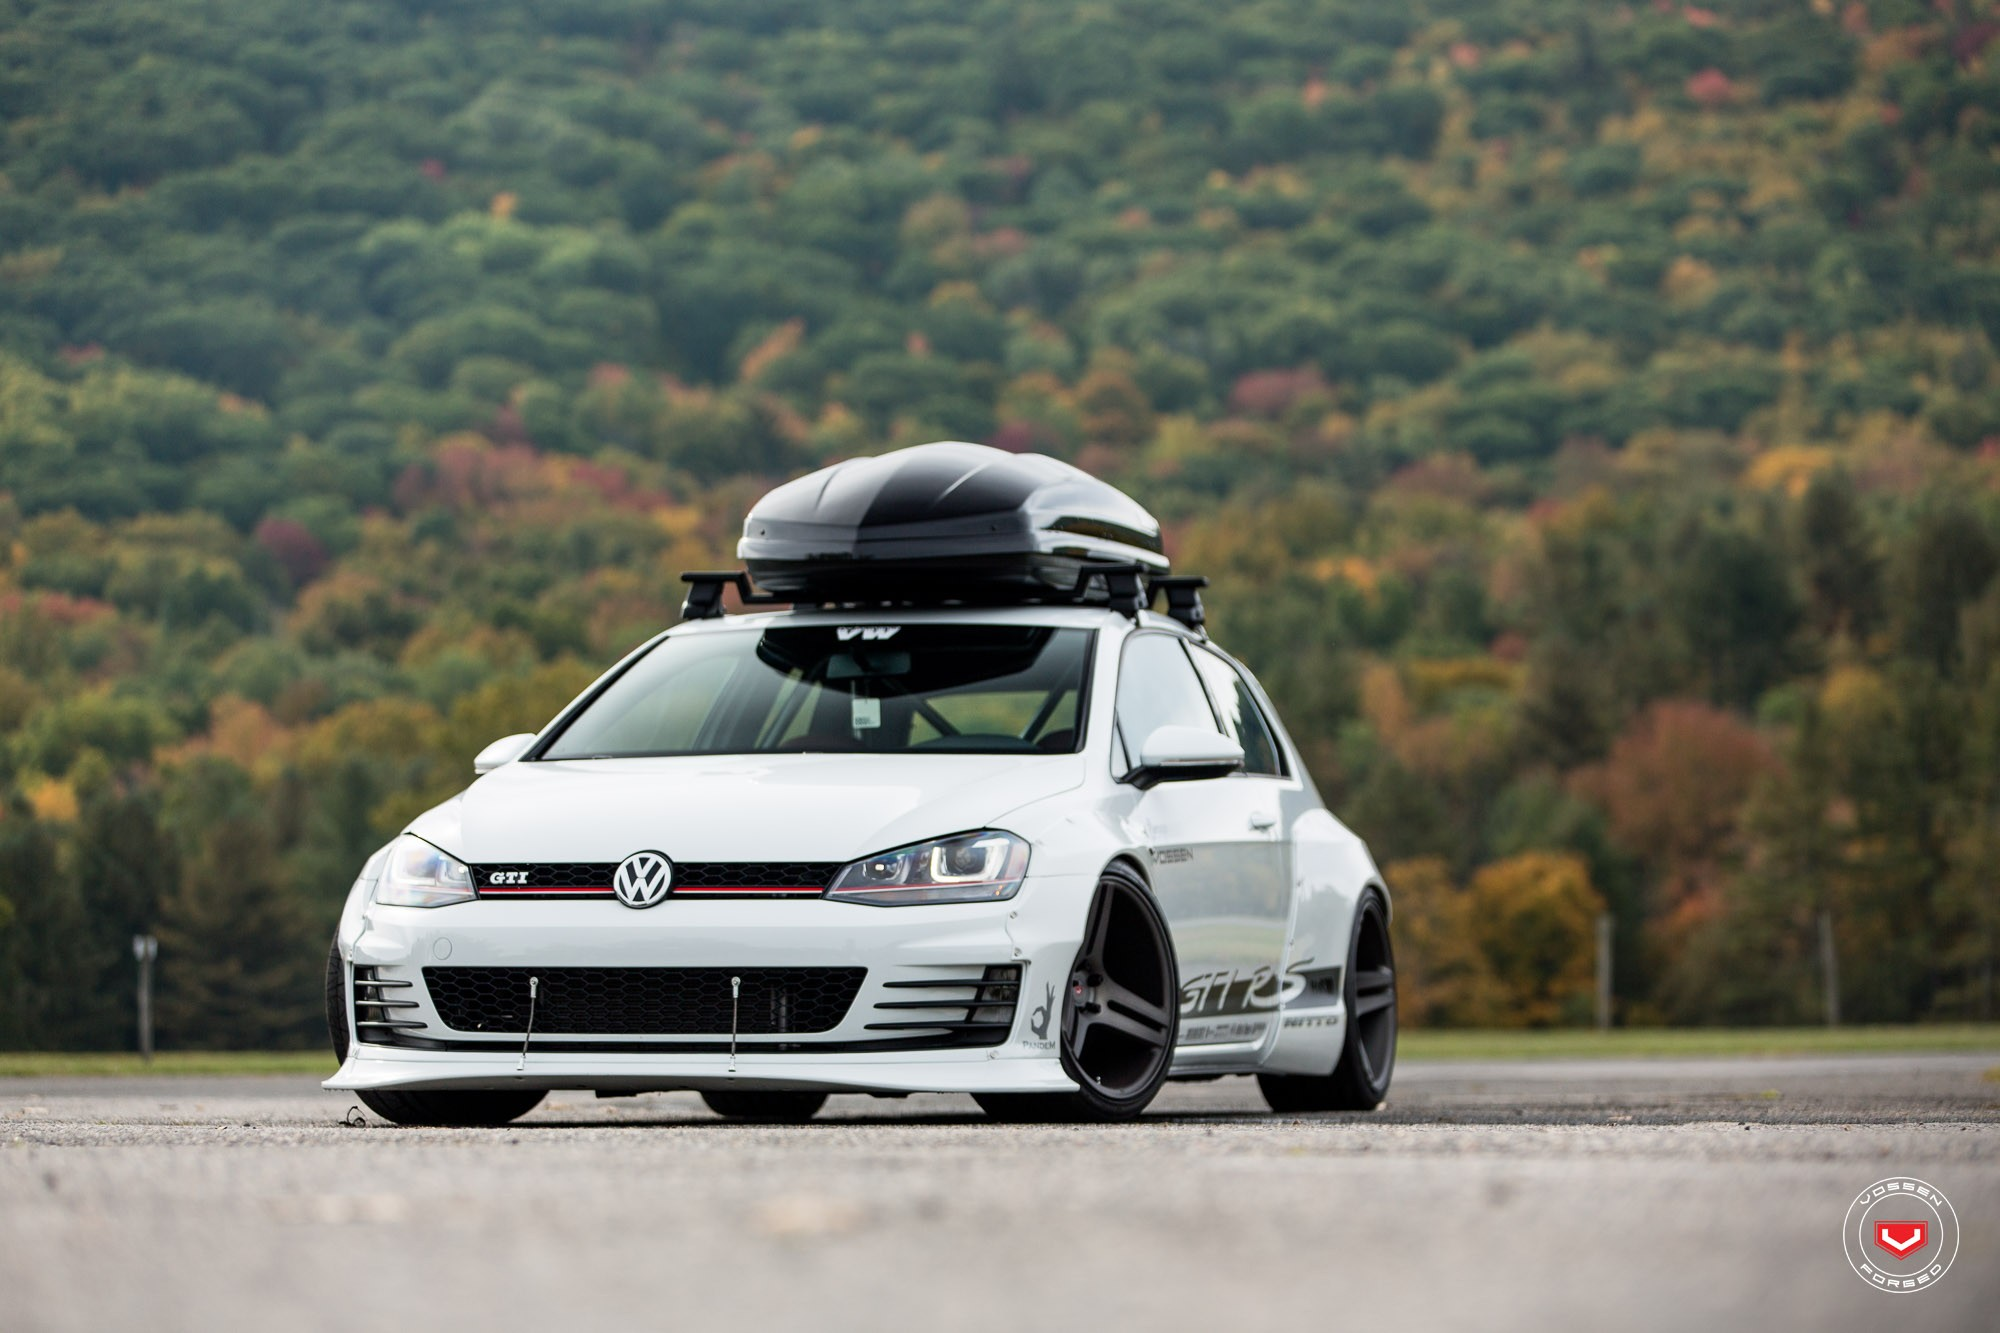 Golf Gti Rs Has Rocket Bunny Fenders Working Aero